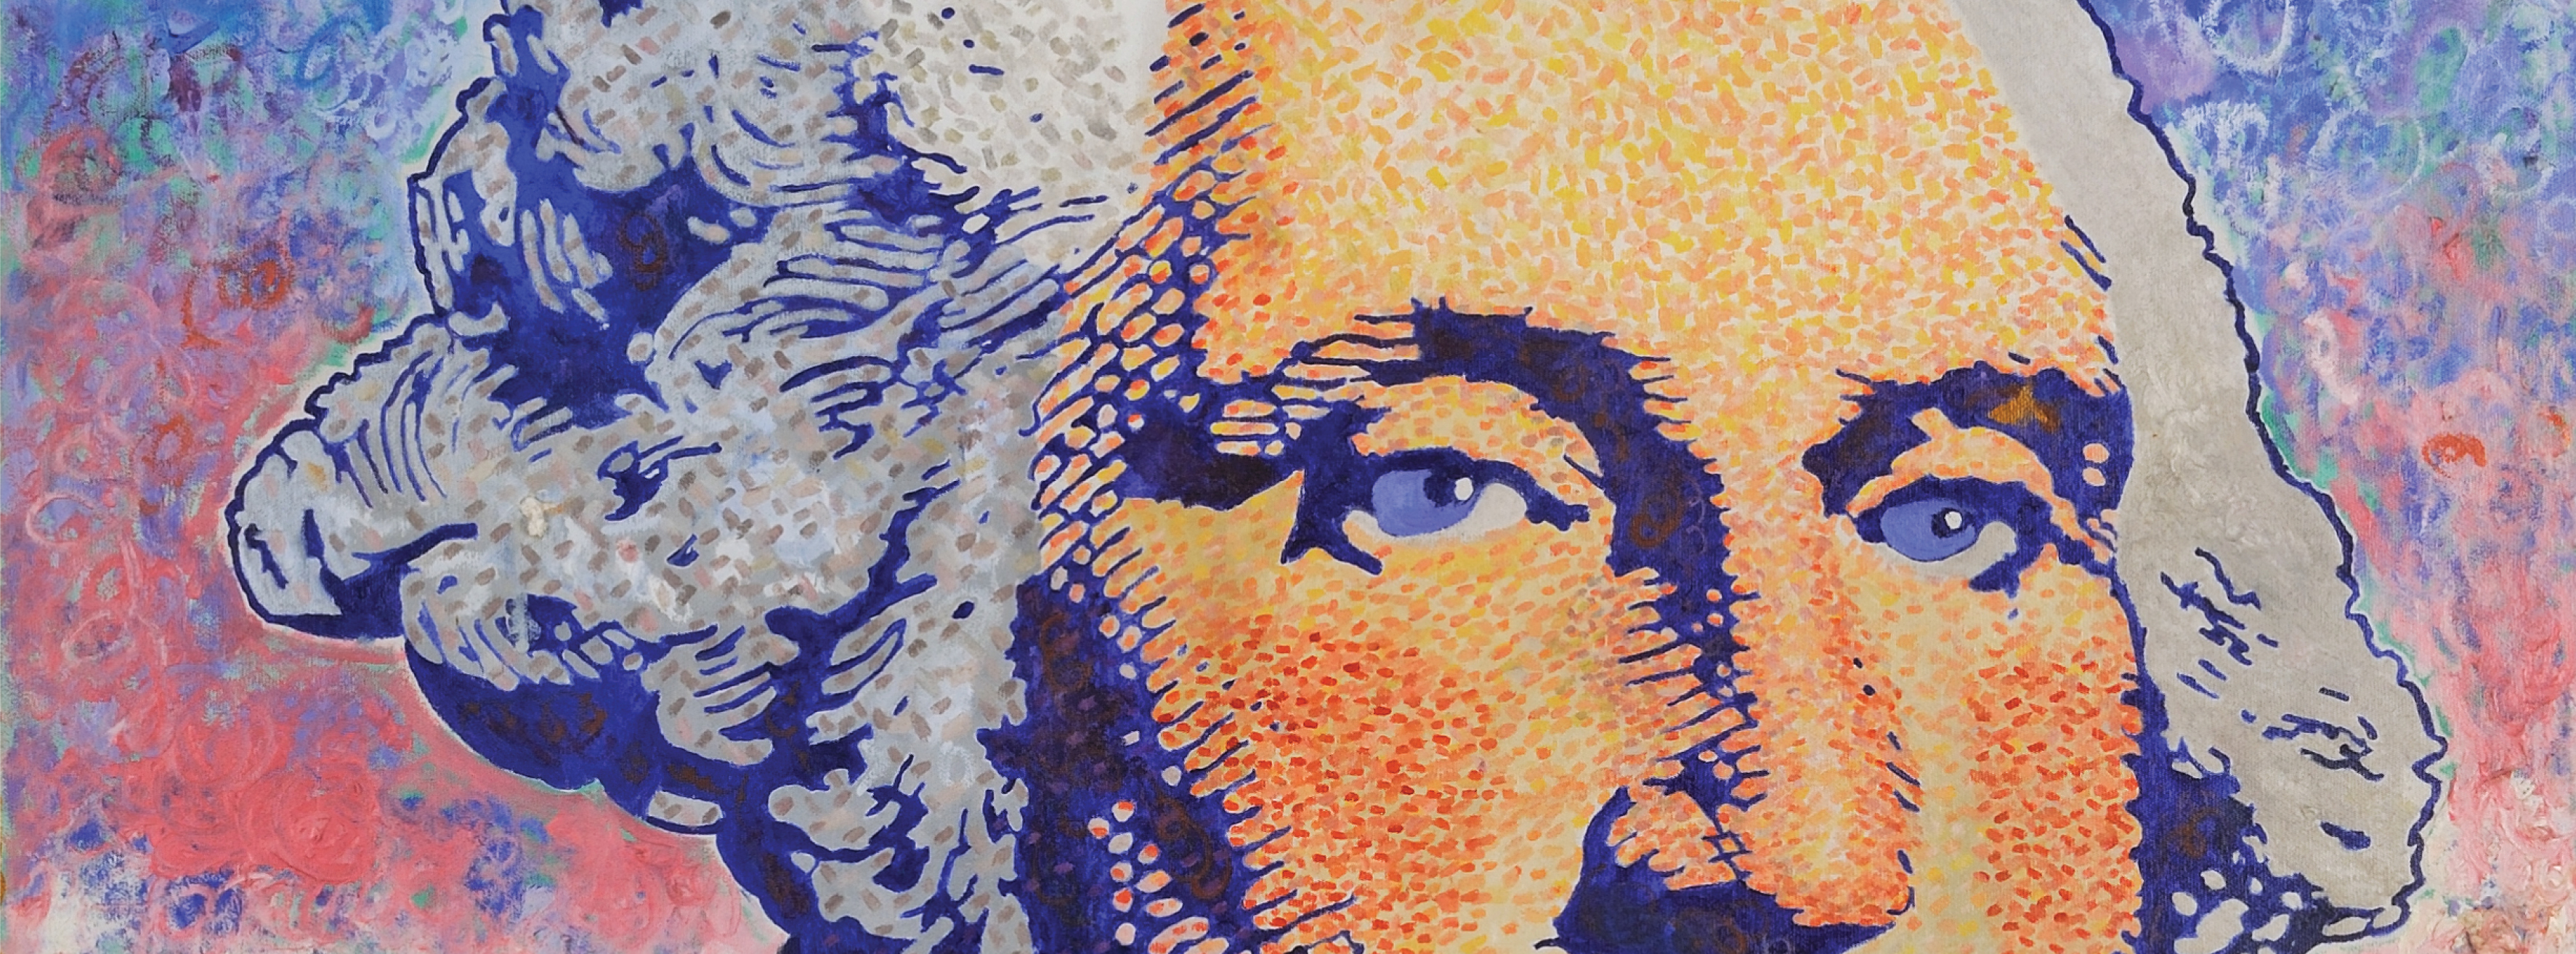 Pop Art painting of George Washington